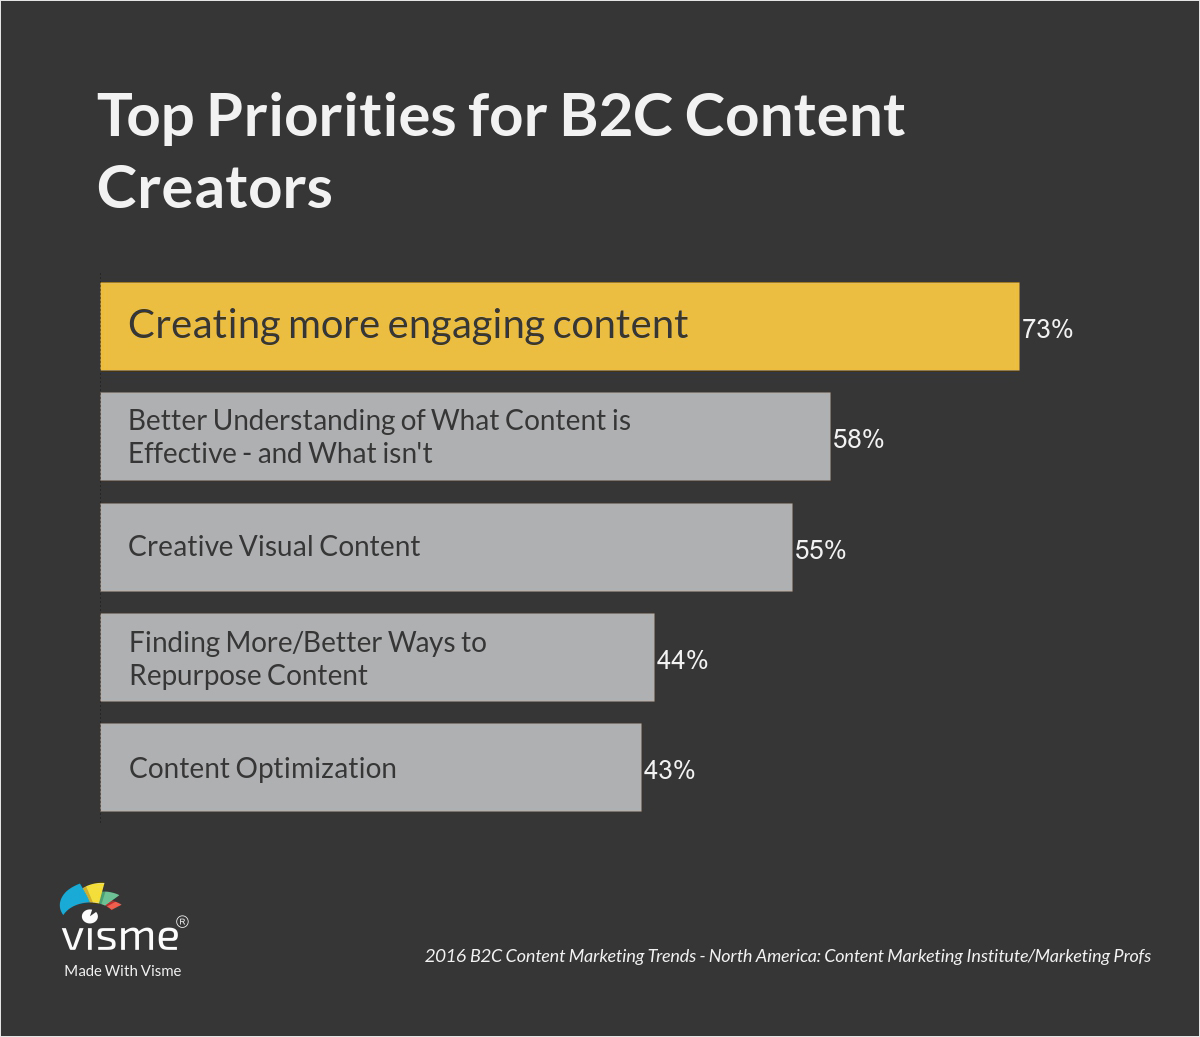 newsletter ideas How-to-Entice-your-Subscribers-with-Rich-Media-in-Email-Marketing-Top-Priorities-for-B2C-Content-Creators